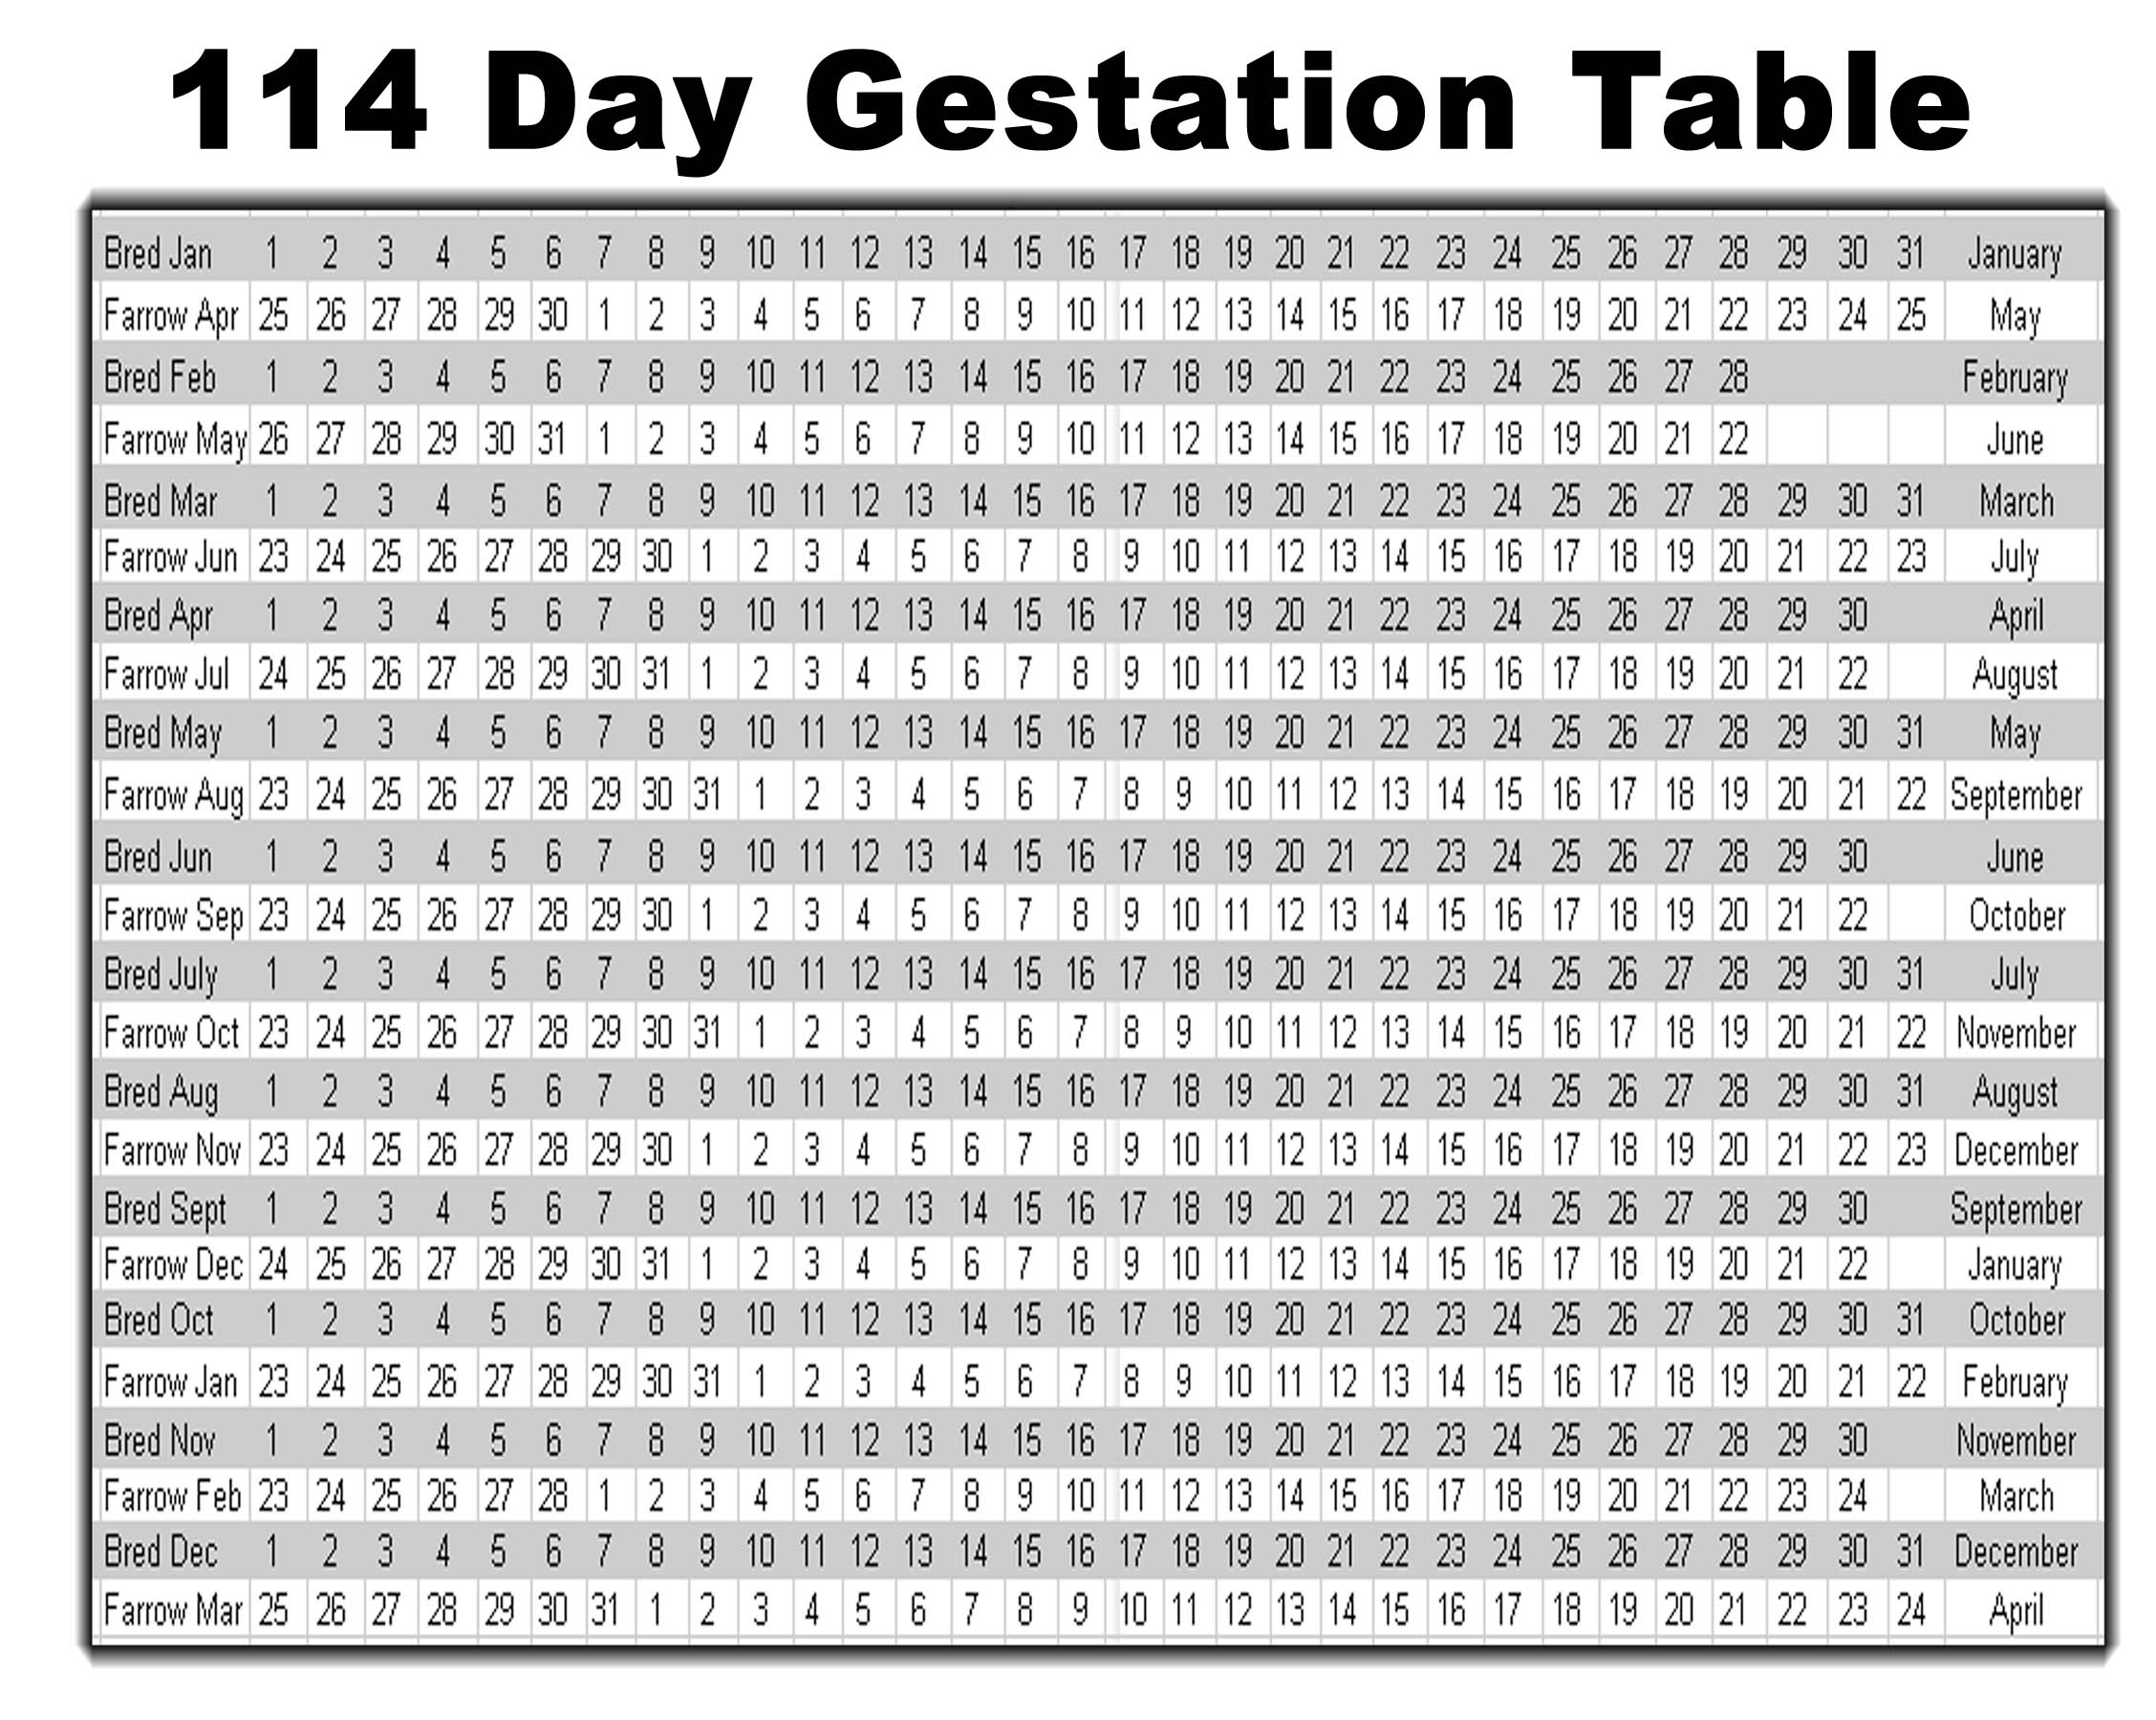 swine pig gestation table